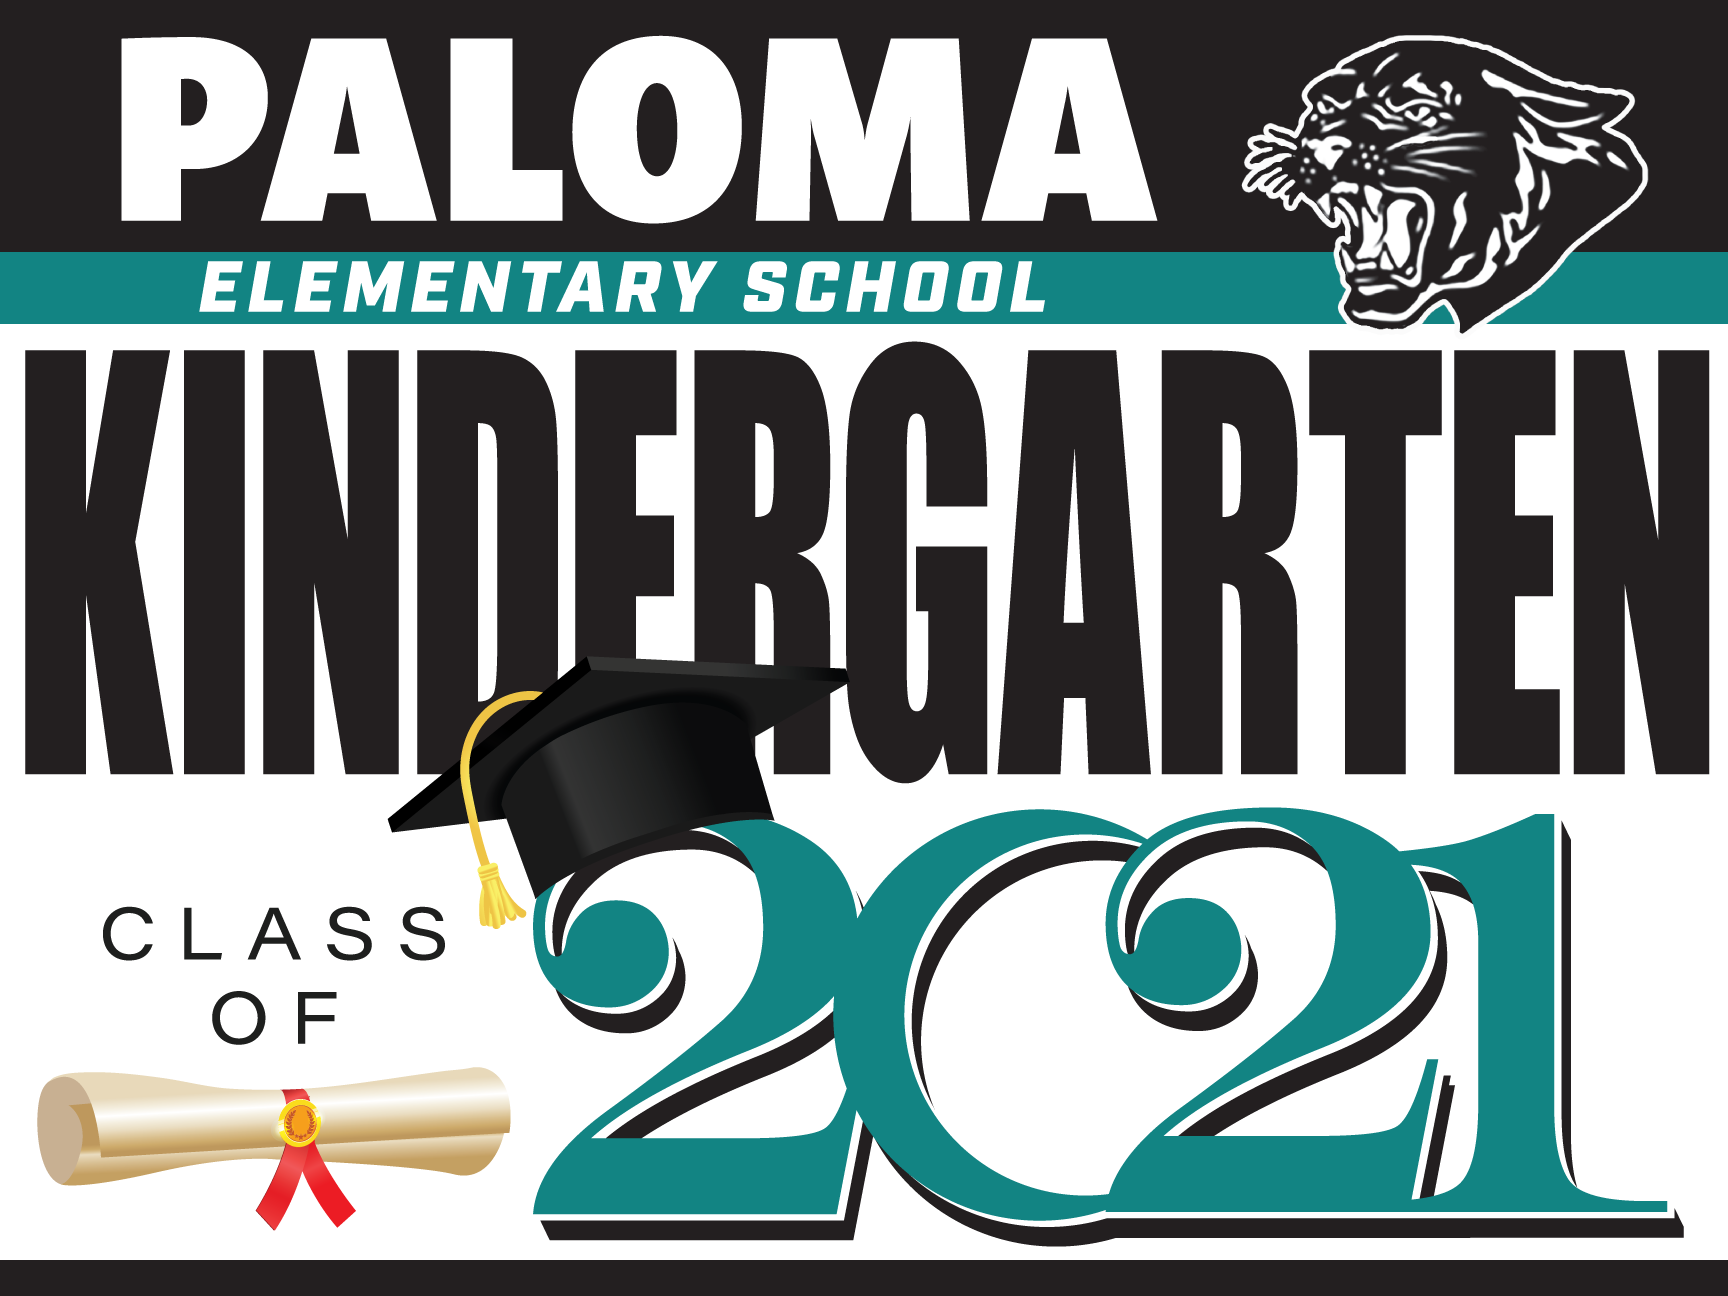 Paloma Elementary School Kindergarten Graduation Yard Sign